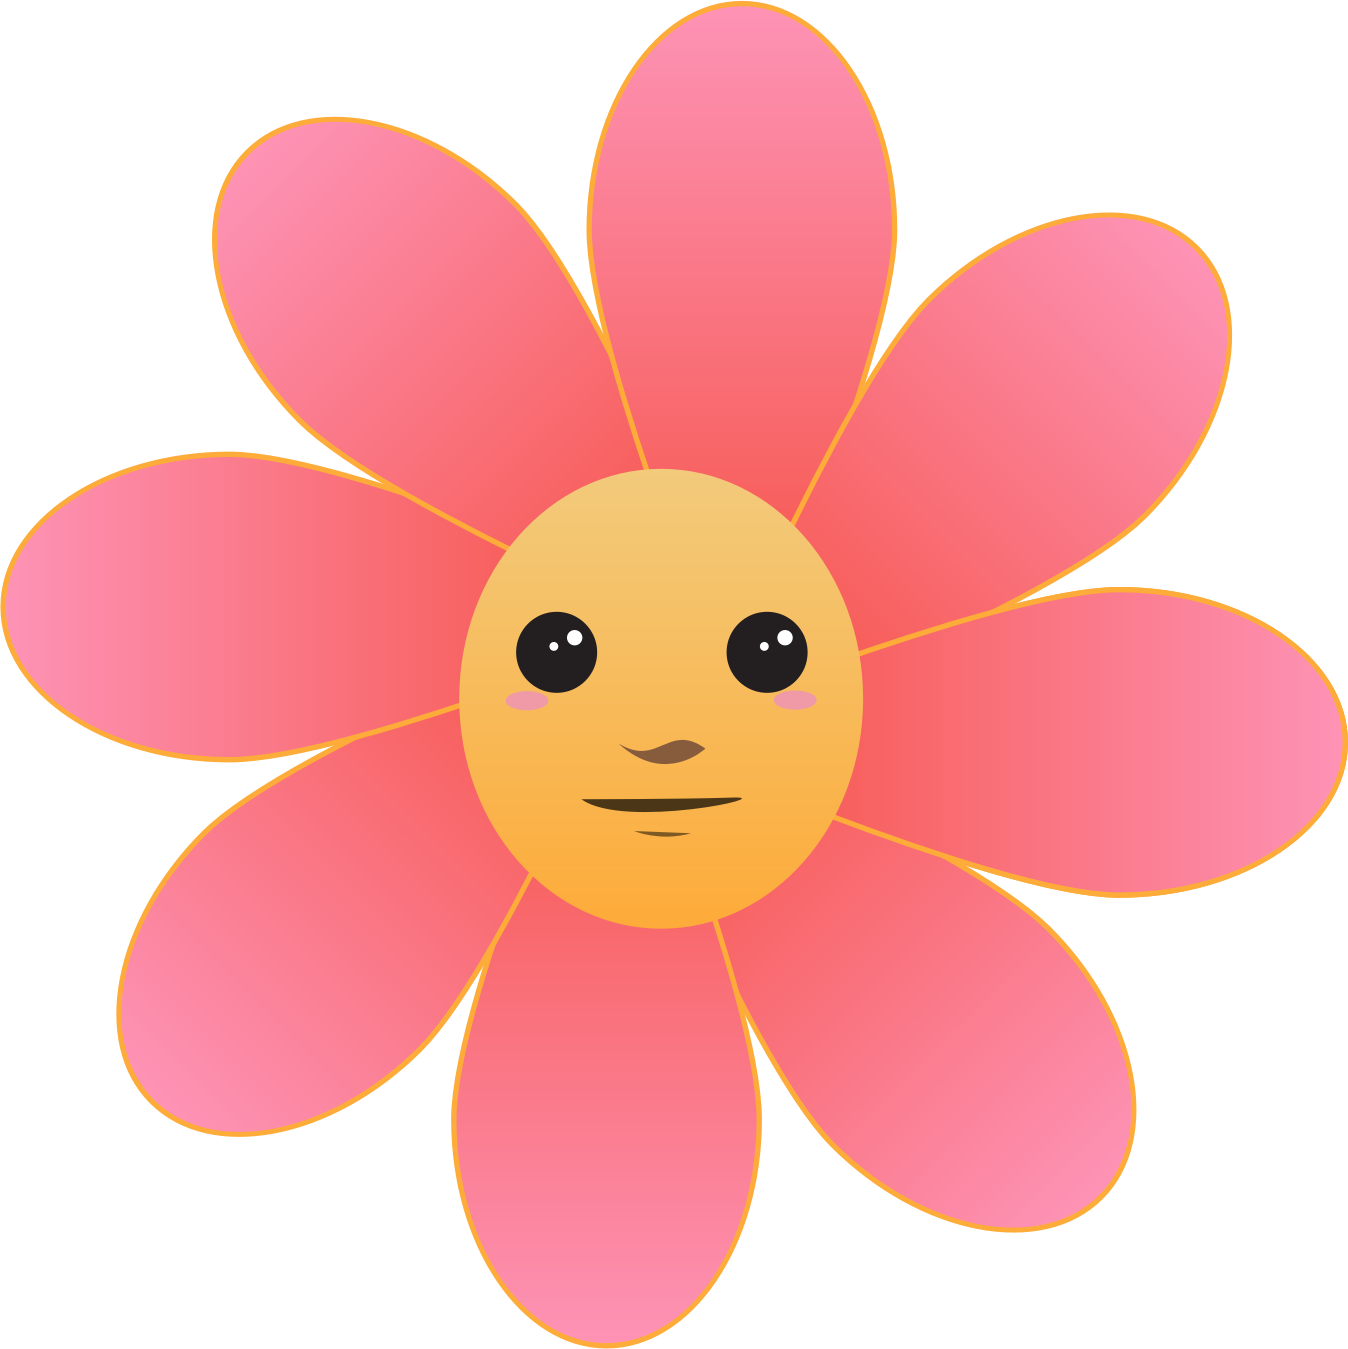 image royalty free stock Face big image png. Character clipart flower.